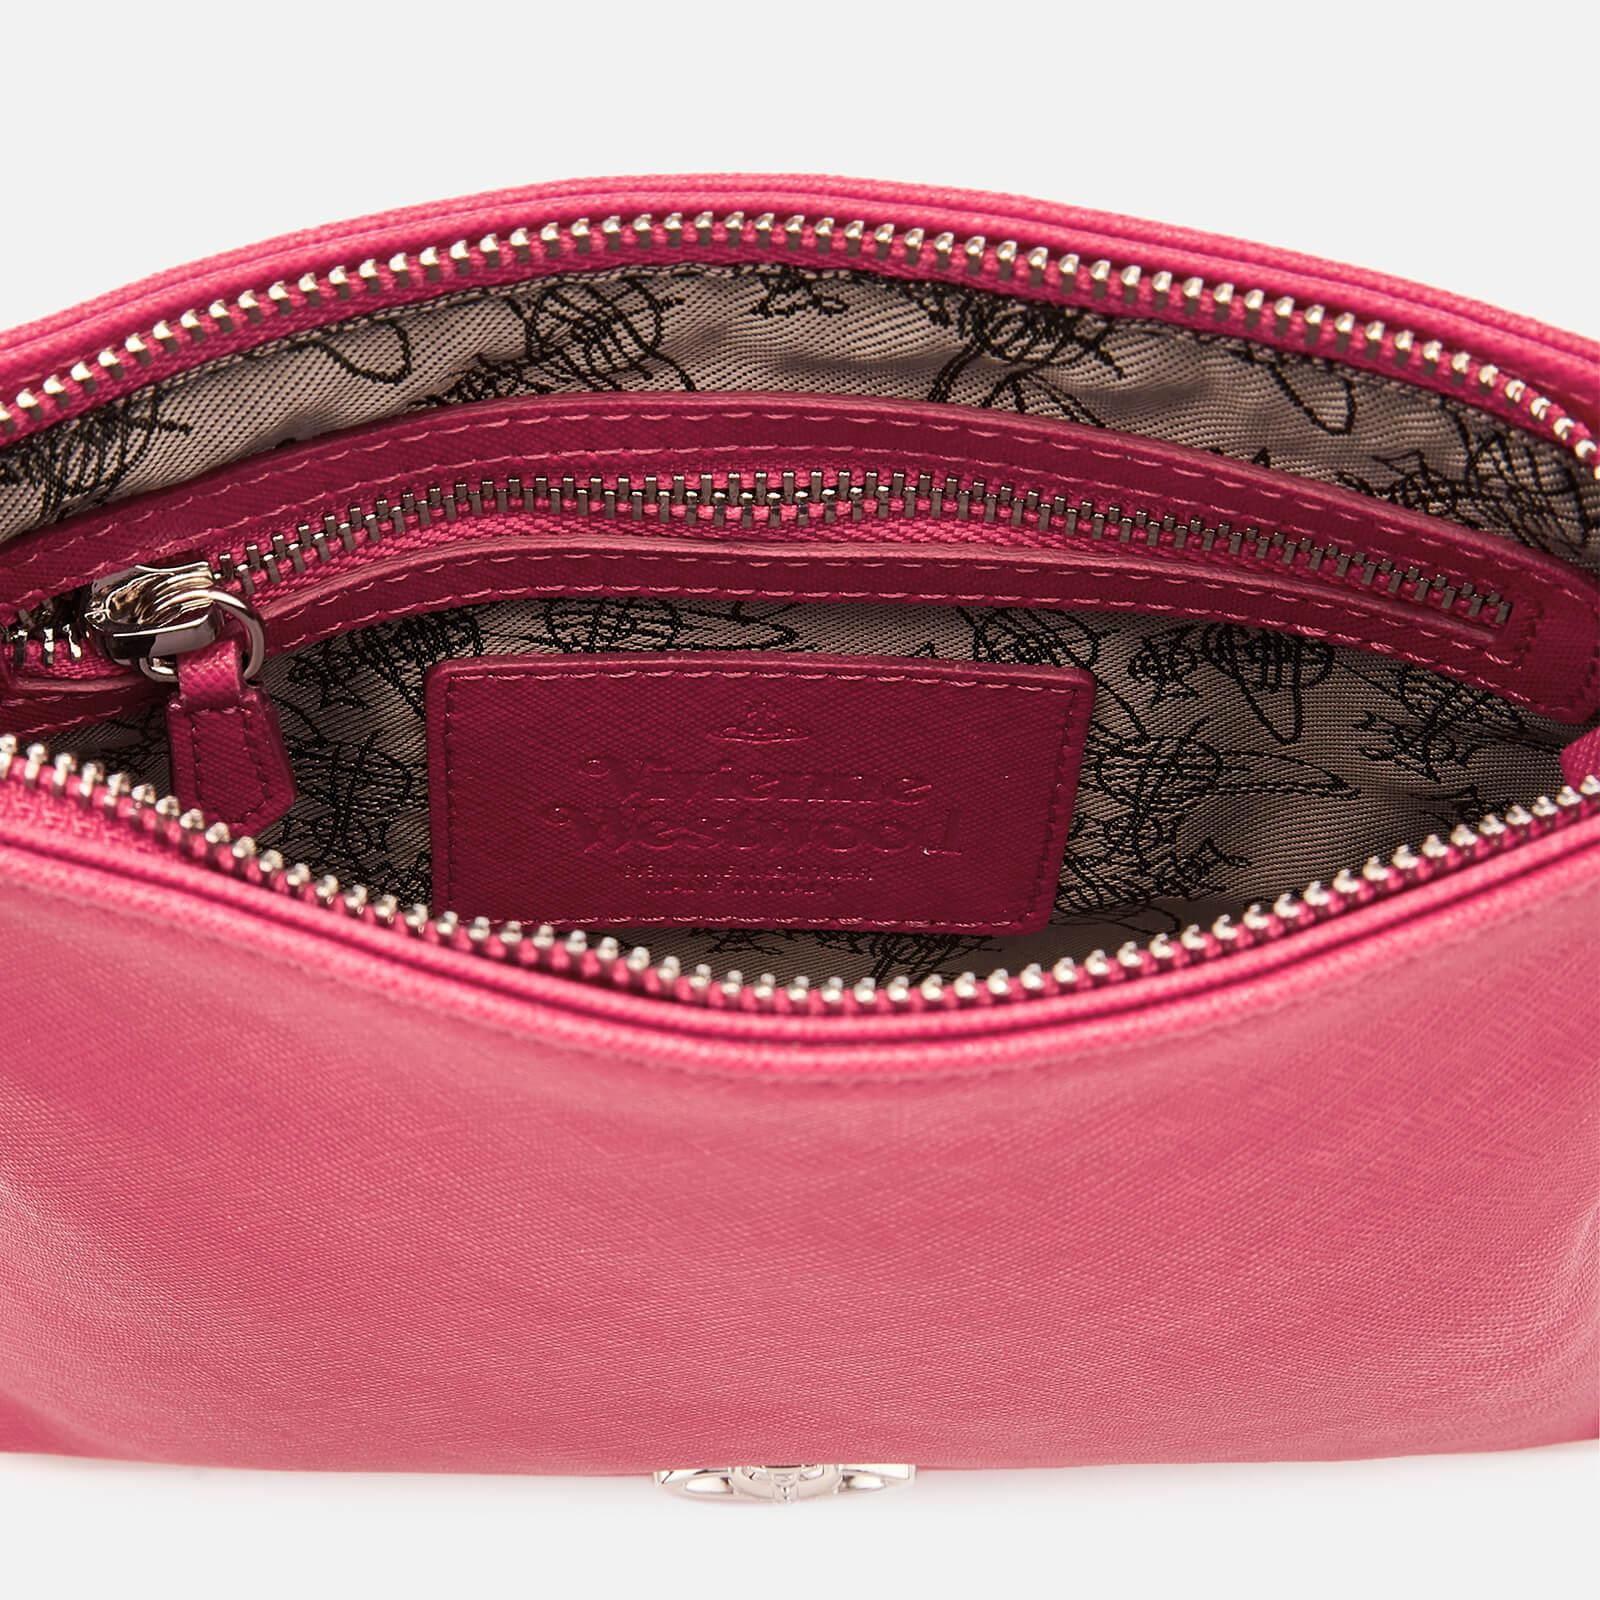 dac56d1e7e2 Vivienne Westwood - Pink Victoria Square Cross Body Bag - Lyst. View  fullscreen